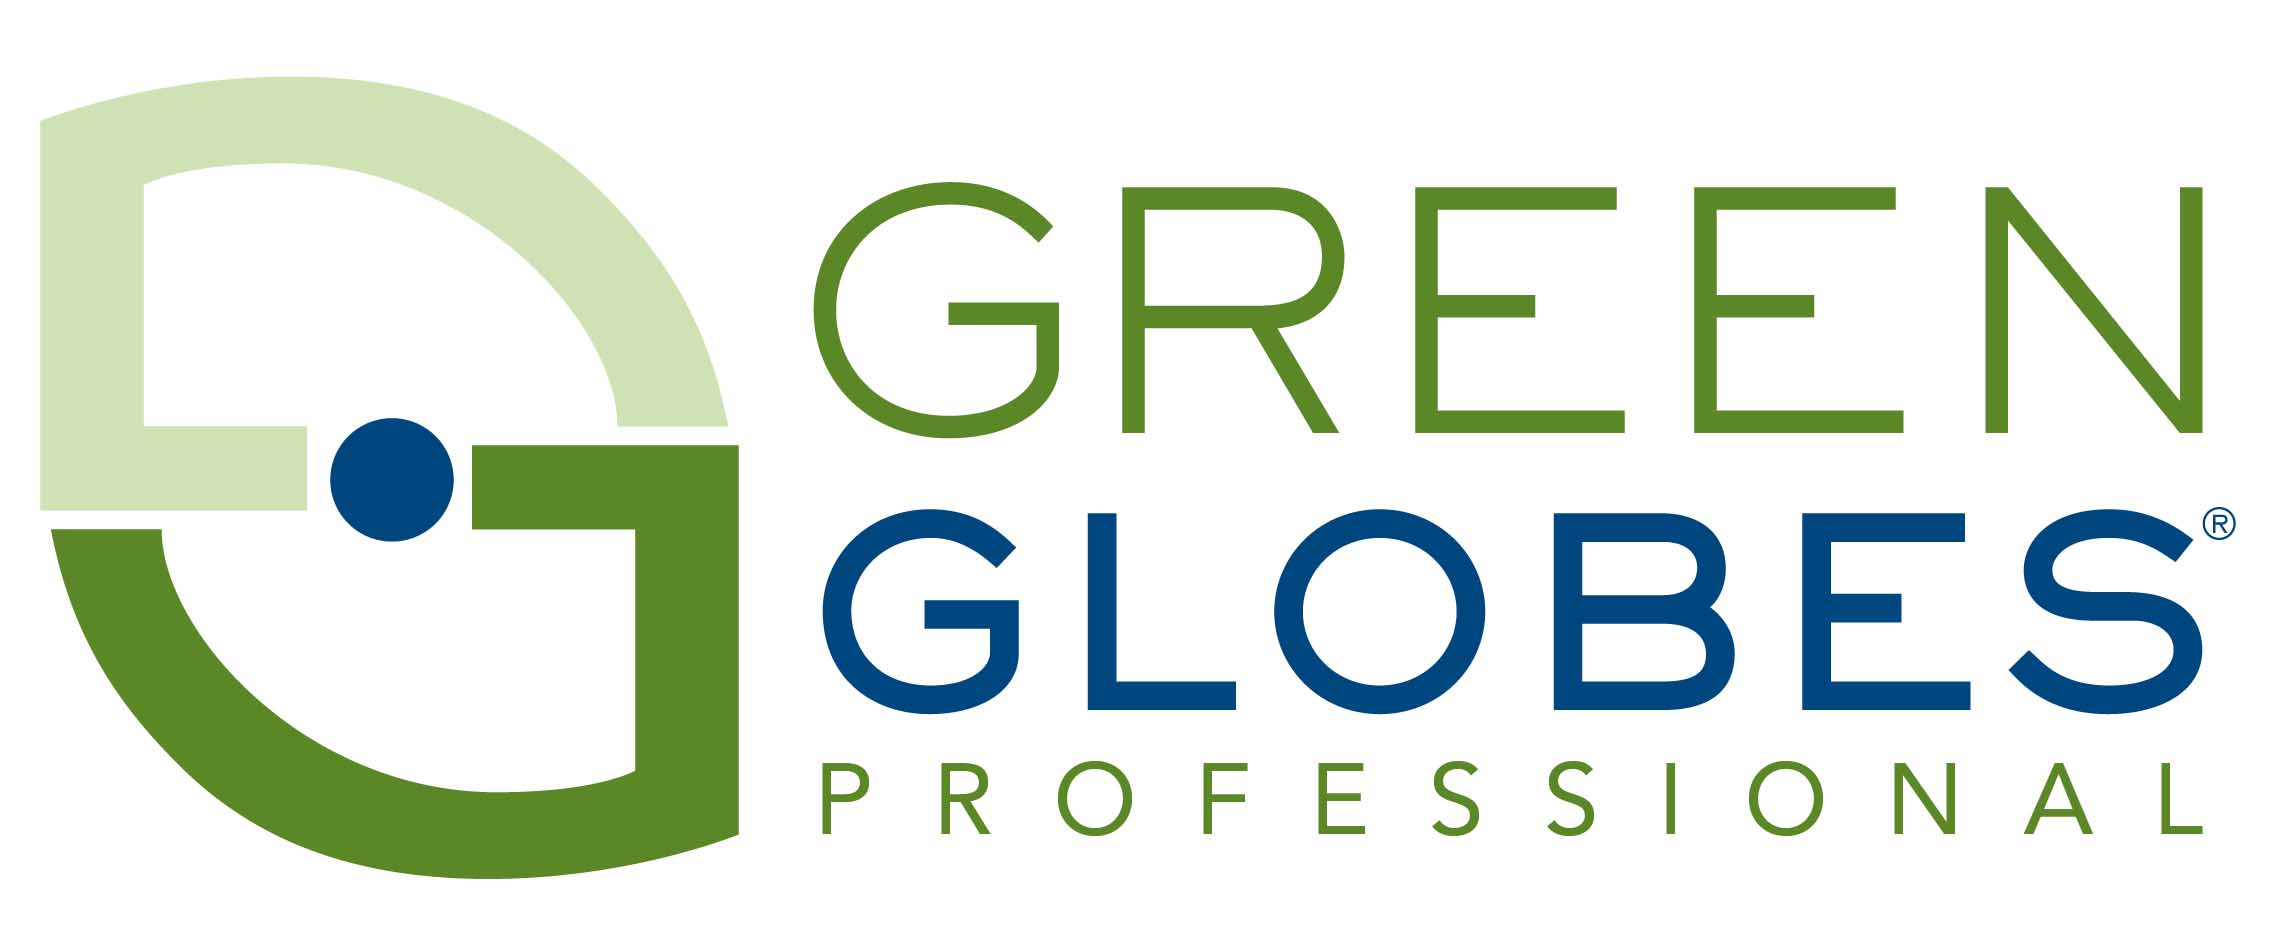 Green Globes Professional